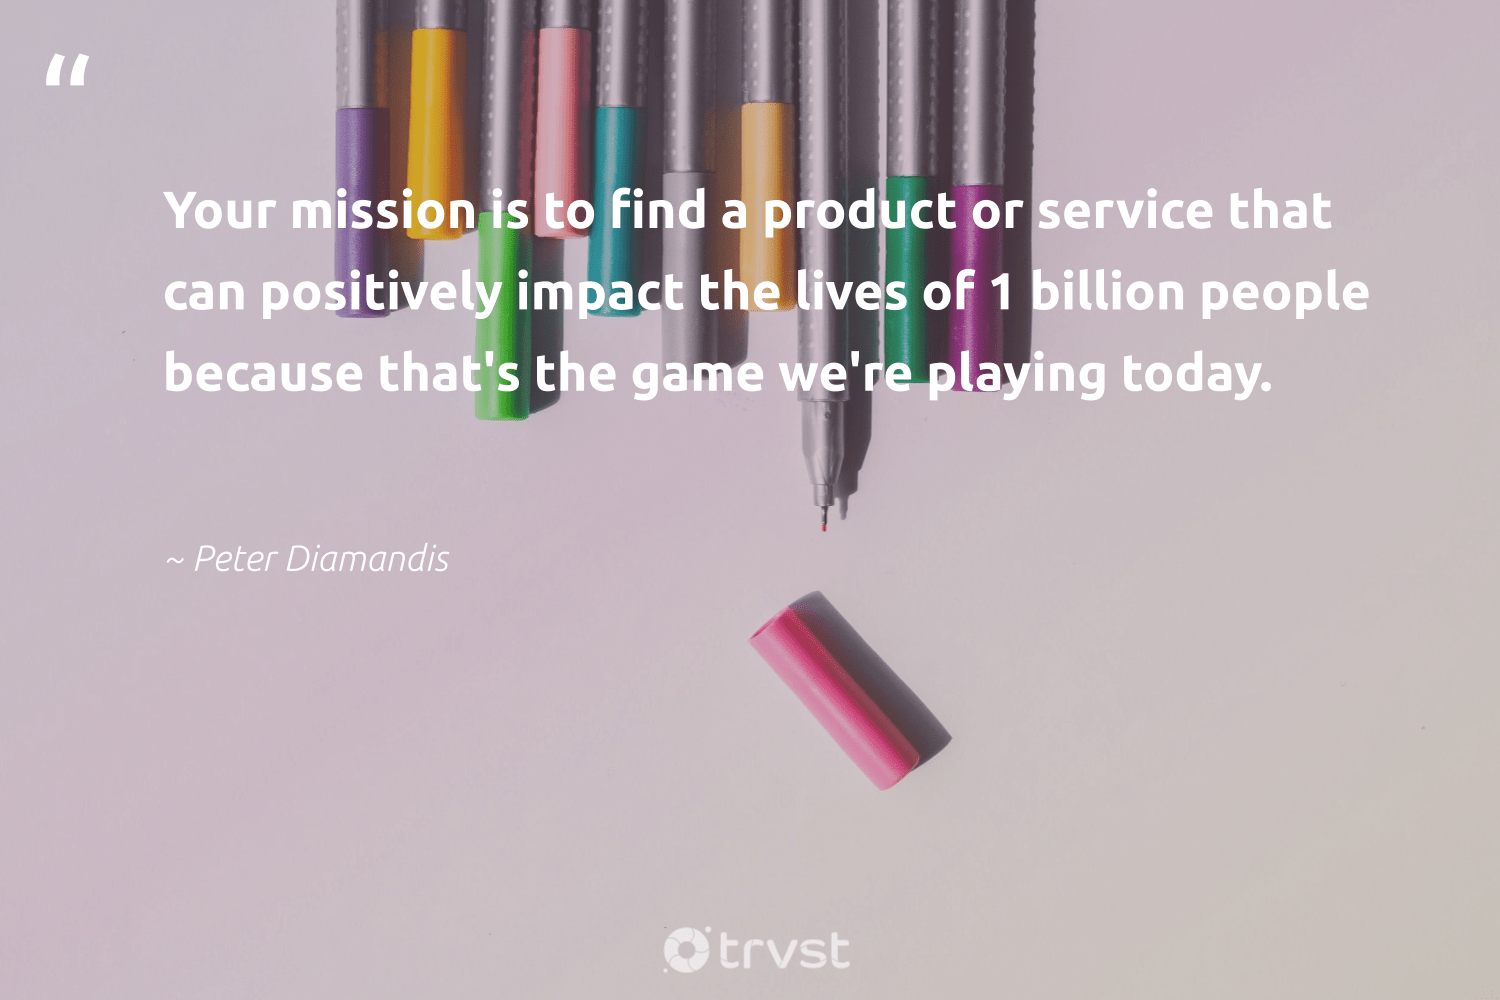 """""""Your mission is to find a product or service that can positively impact the lives of 1 billion people because that's the game we're playing today.""""  - Peter Diamandis #trvst #quotes #impact #weareallone #changetheworld #socialchange #beinspired #ethicalbusiness #socialimpact #makeadifference #gogreen #giveback"""